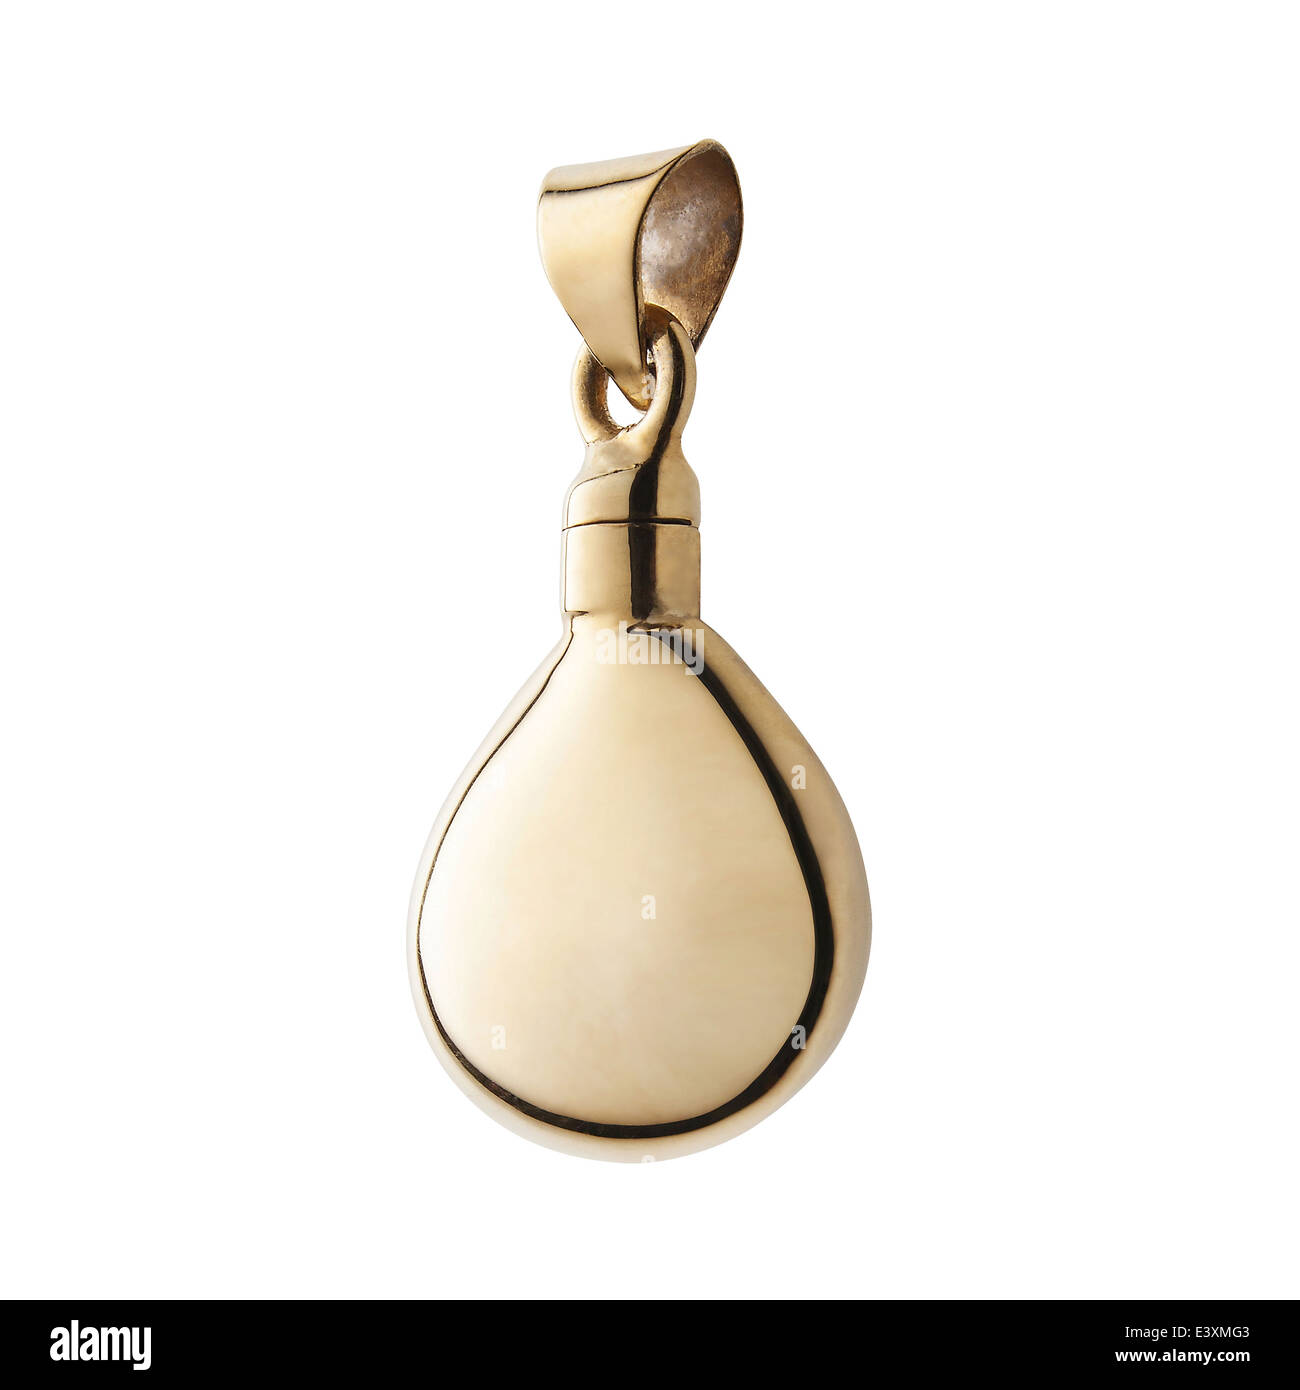 Pendant silver and gold, locket lockets. tear drop shape jewelery. on white background. - Stock Image